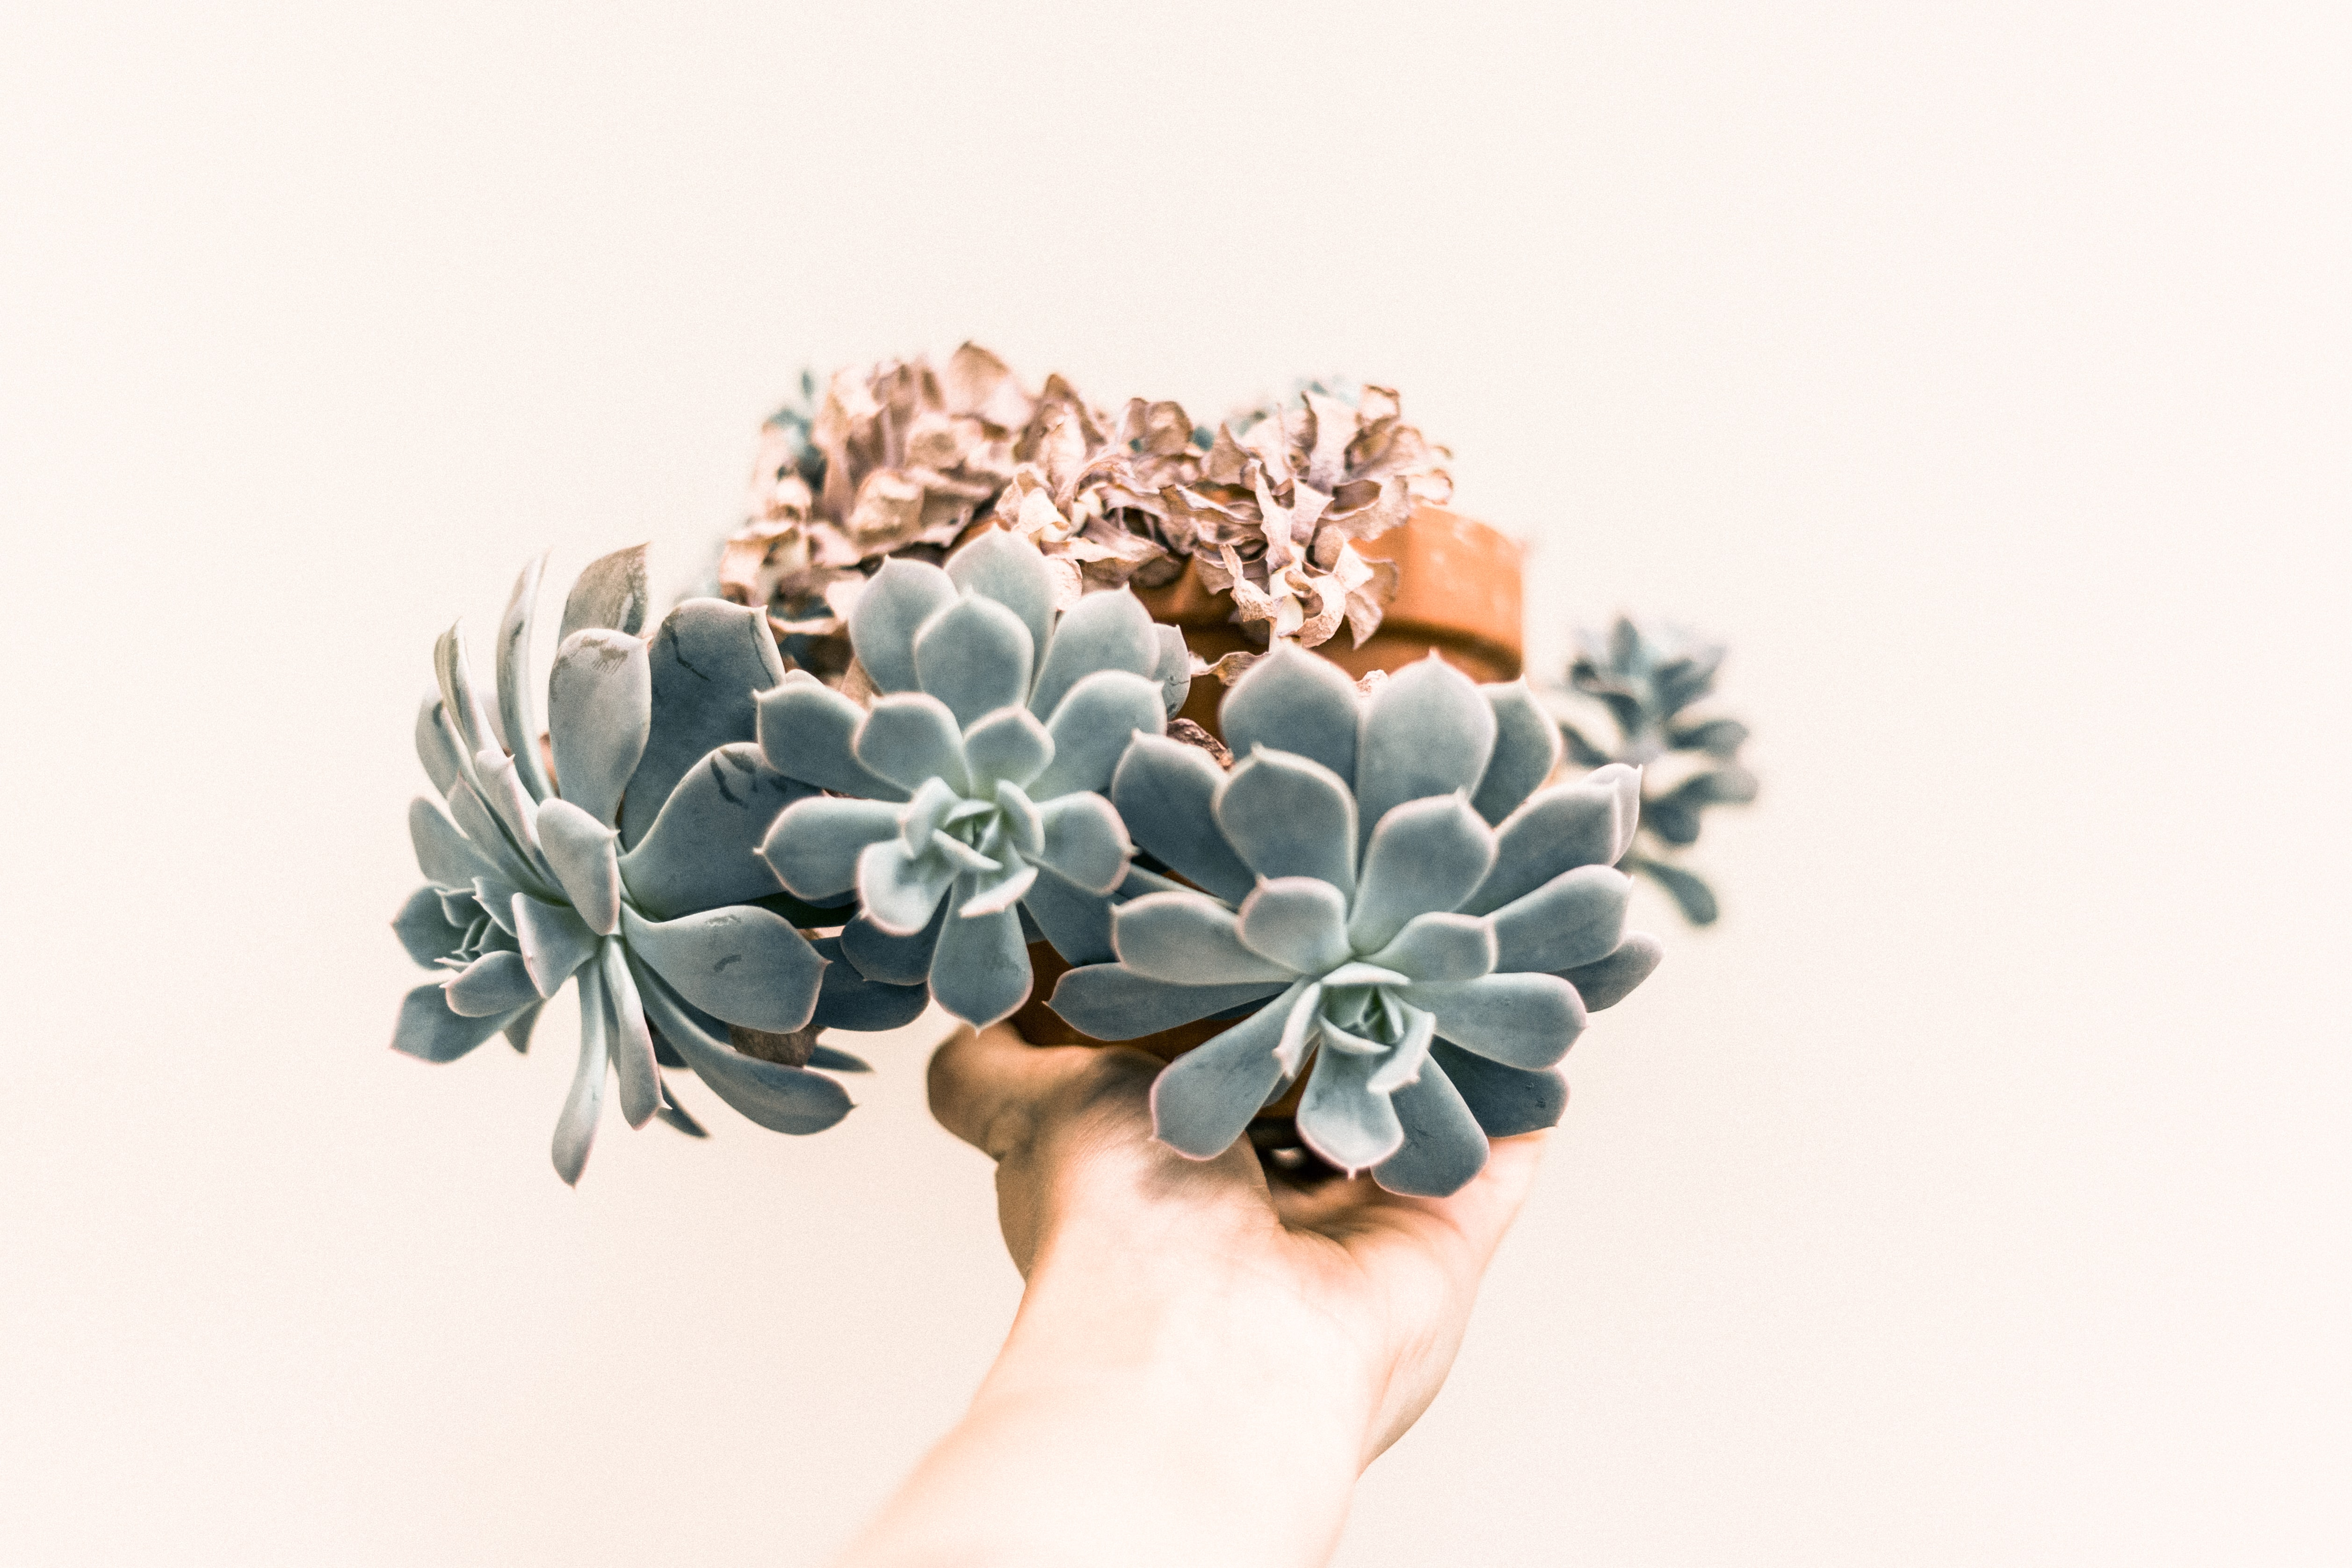 A person's outstretched hand holding a flowerpot with succulents